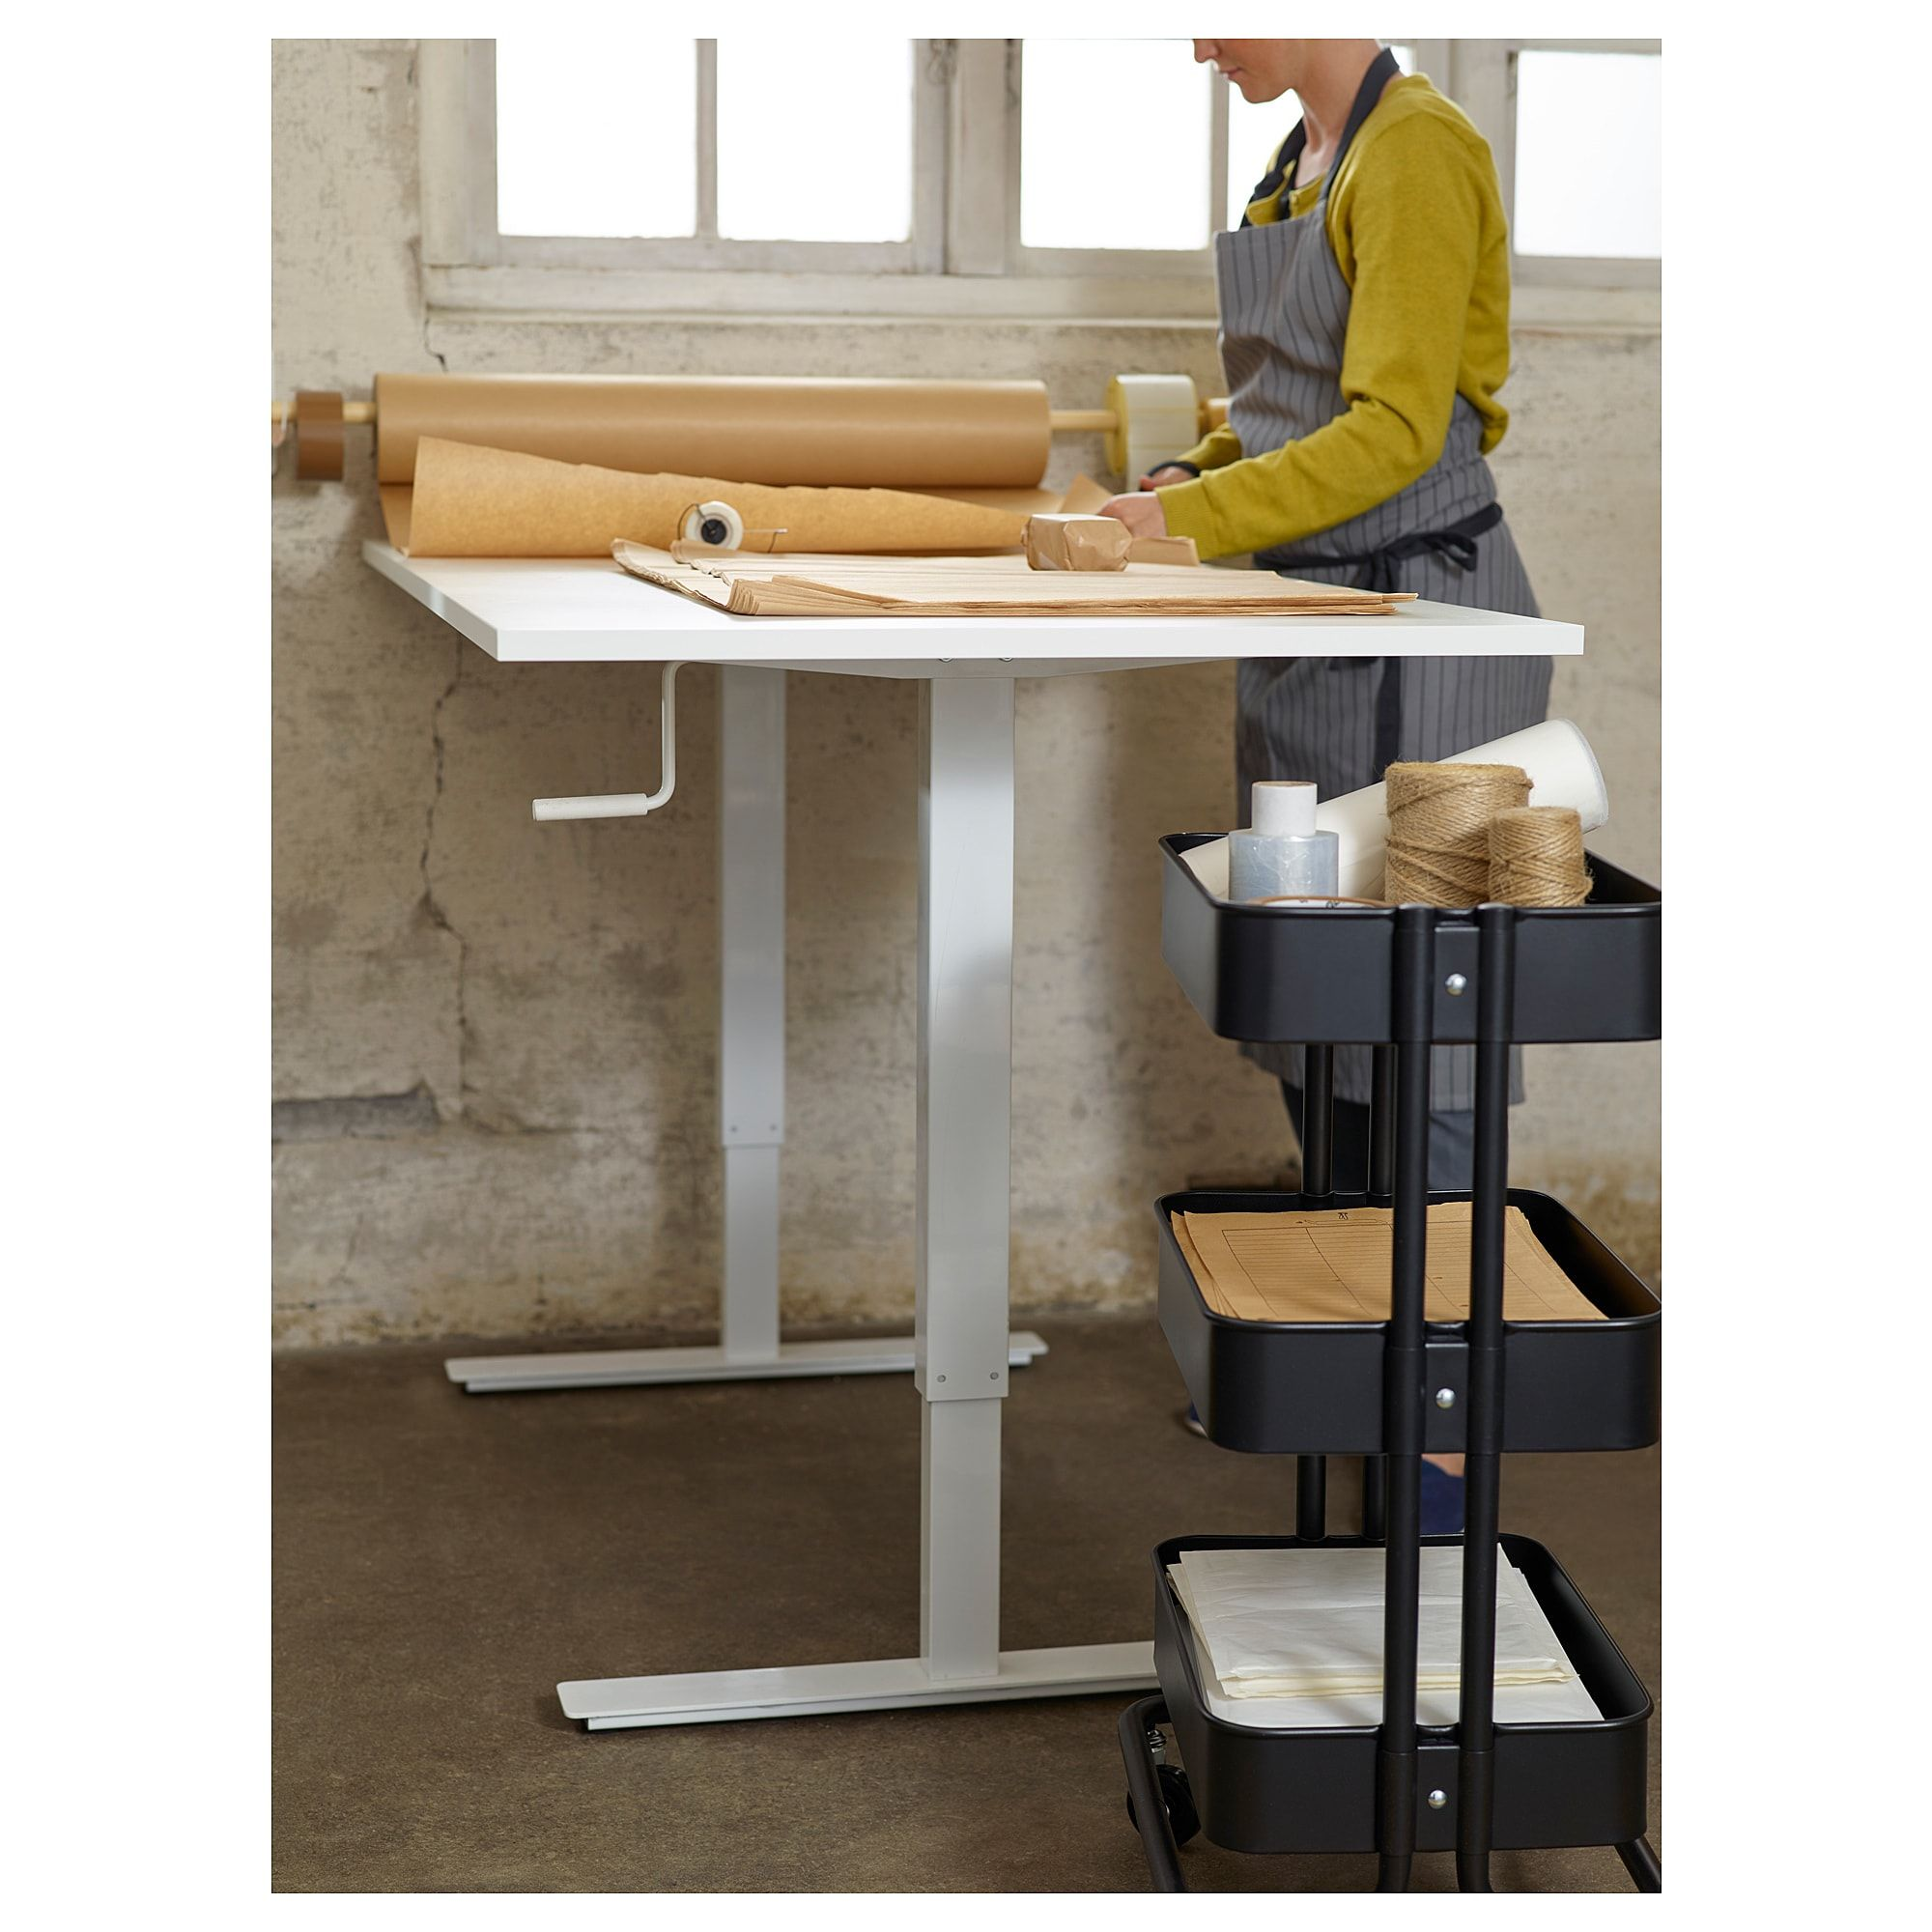 Ikea Skarsta White Desk Sit Stand Stand Up Desk Sit Stand Desk Ikea